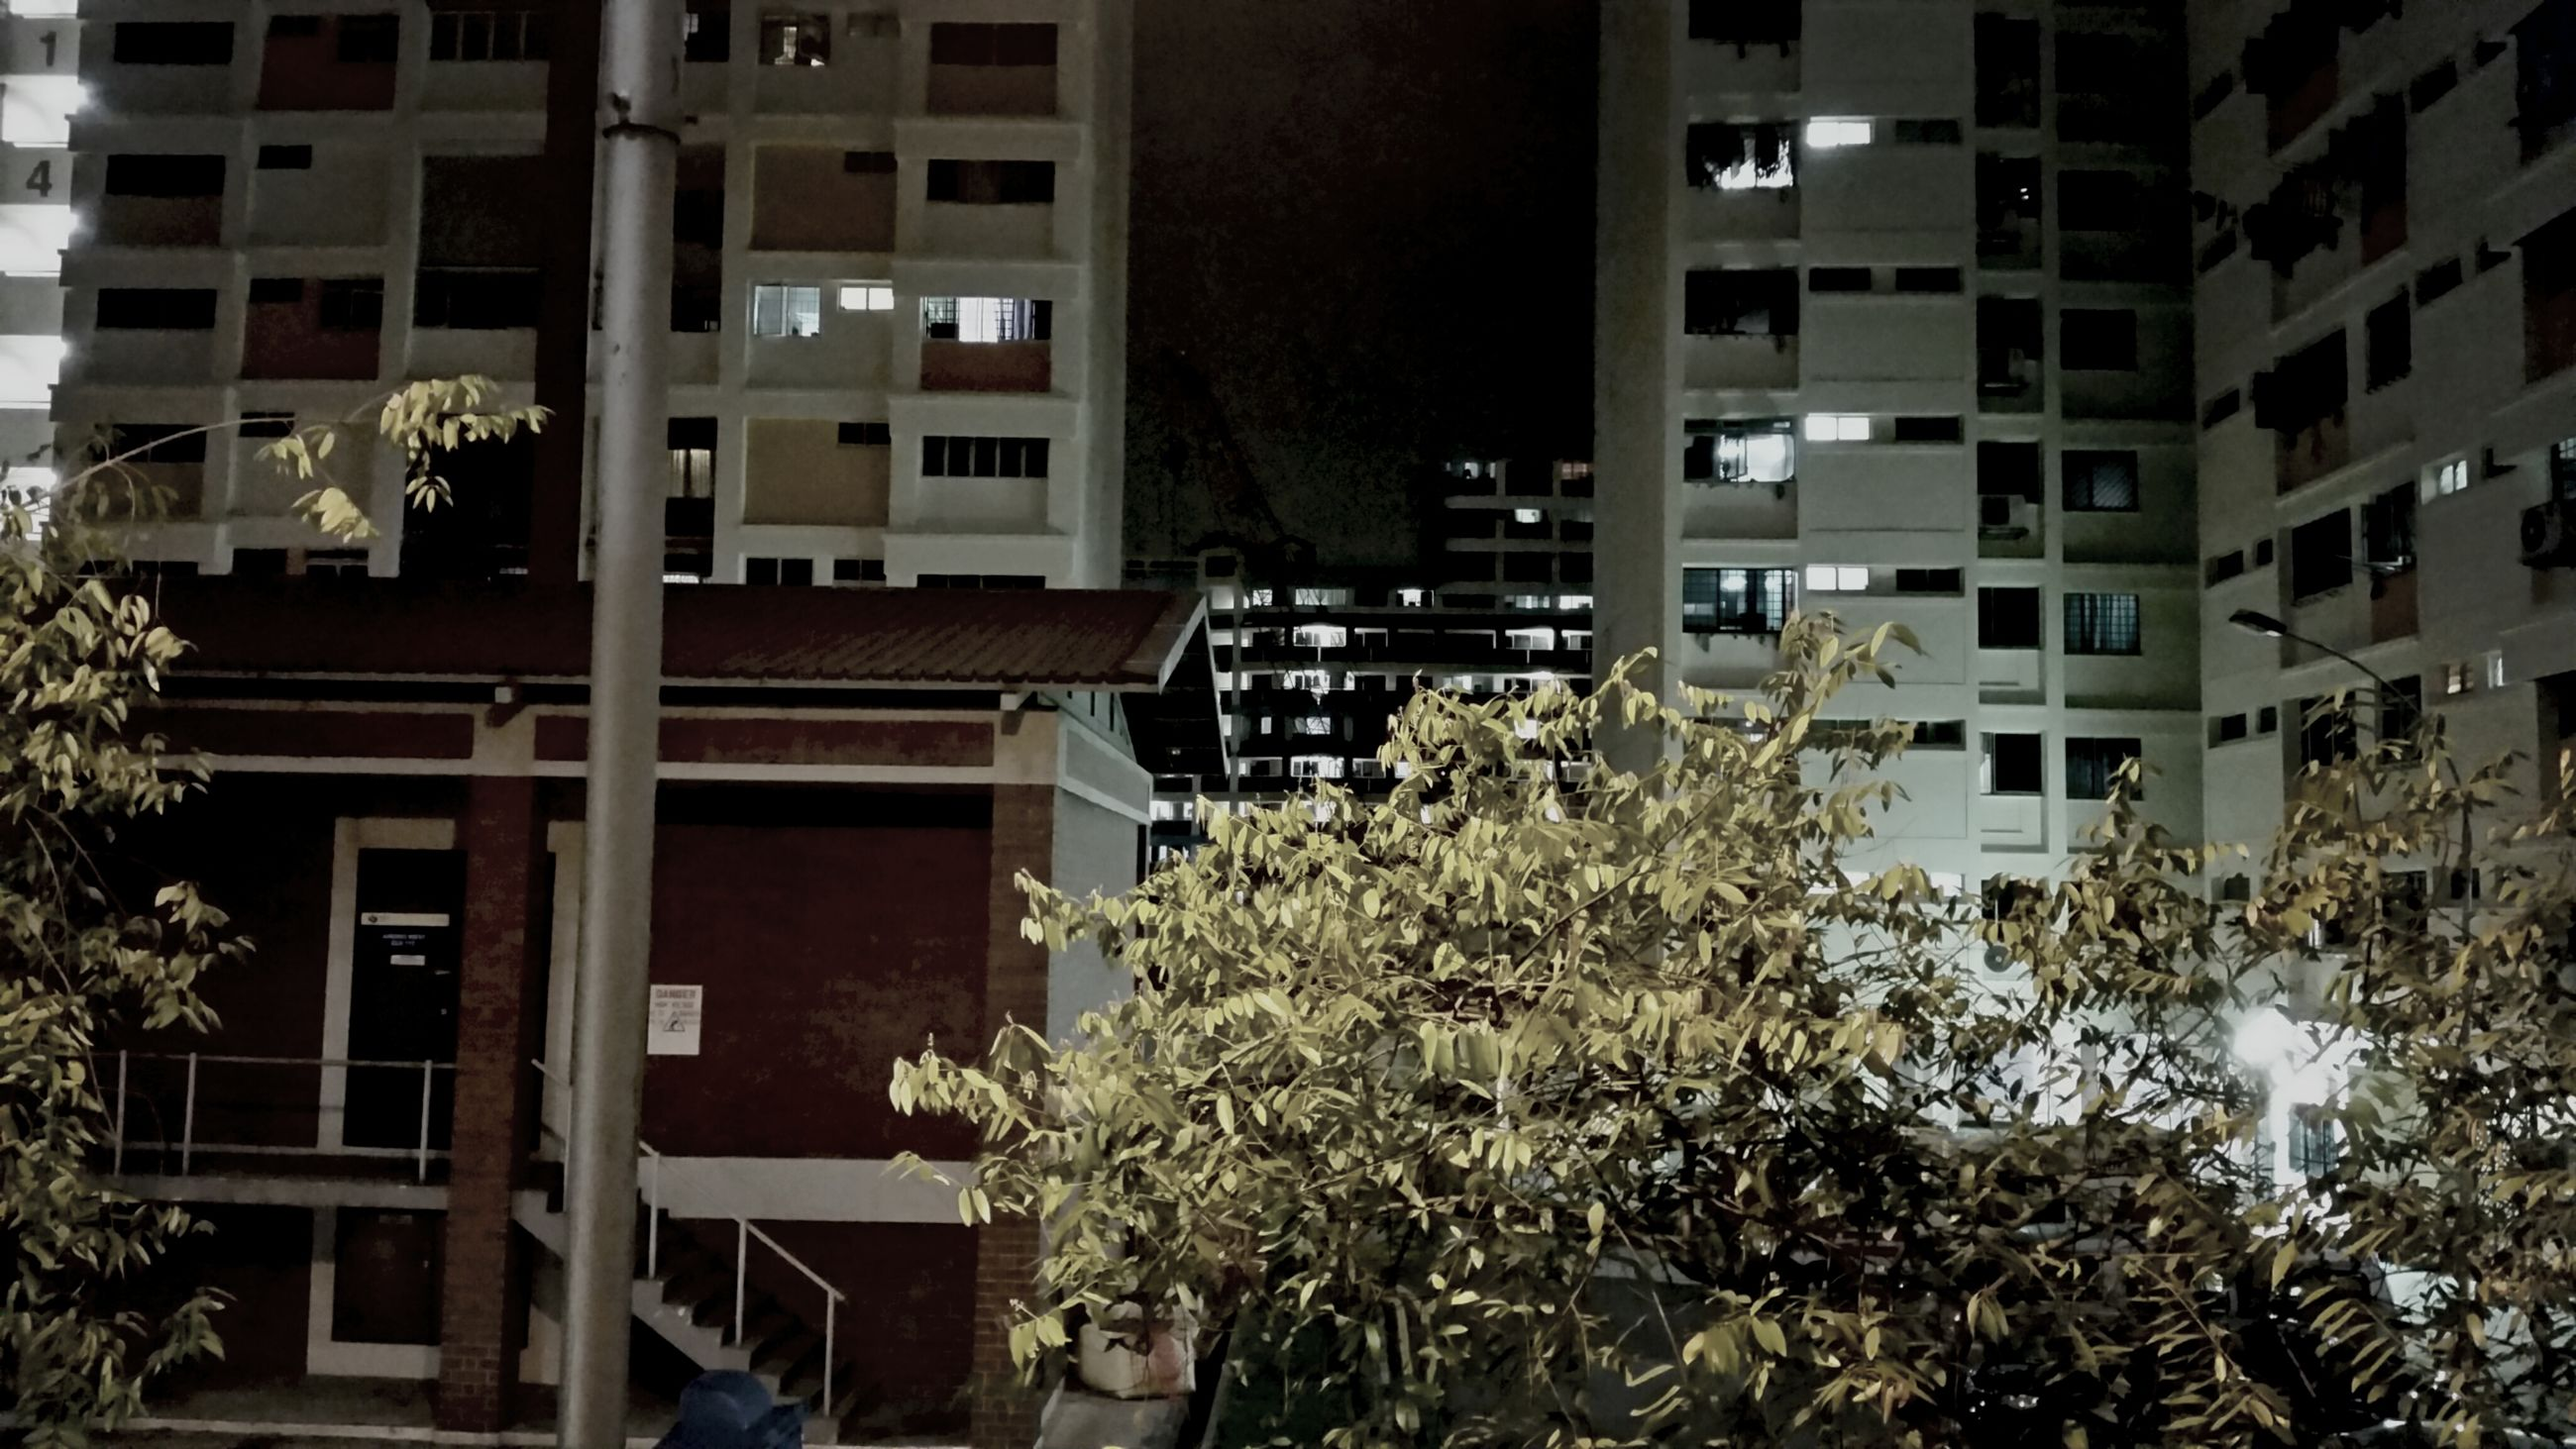 building exterior, architecture, built structure, residential building, city, building, residential structure, window, tree, apartment, low angle view, house, balcony, day, outdoors, city life, exterior, no people, residential district, facade